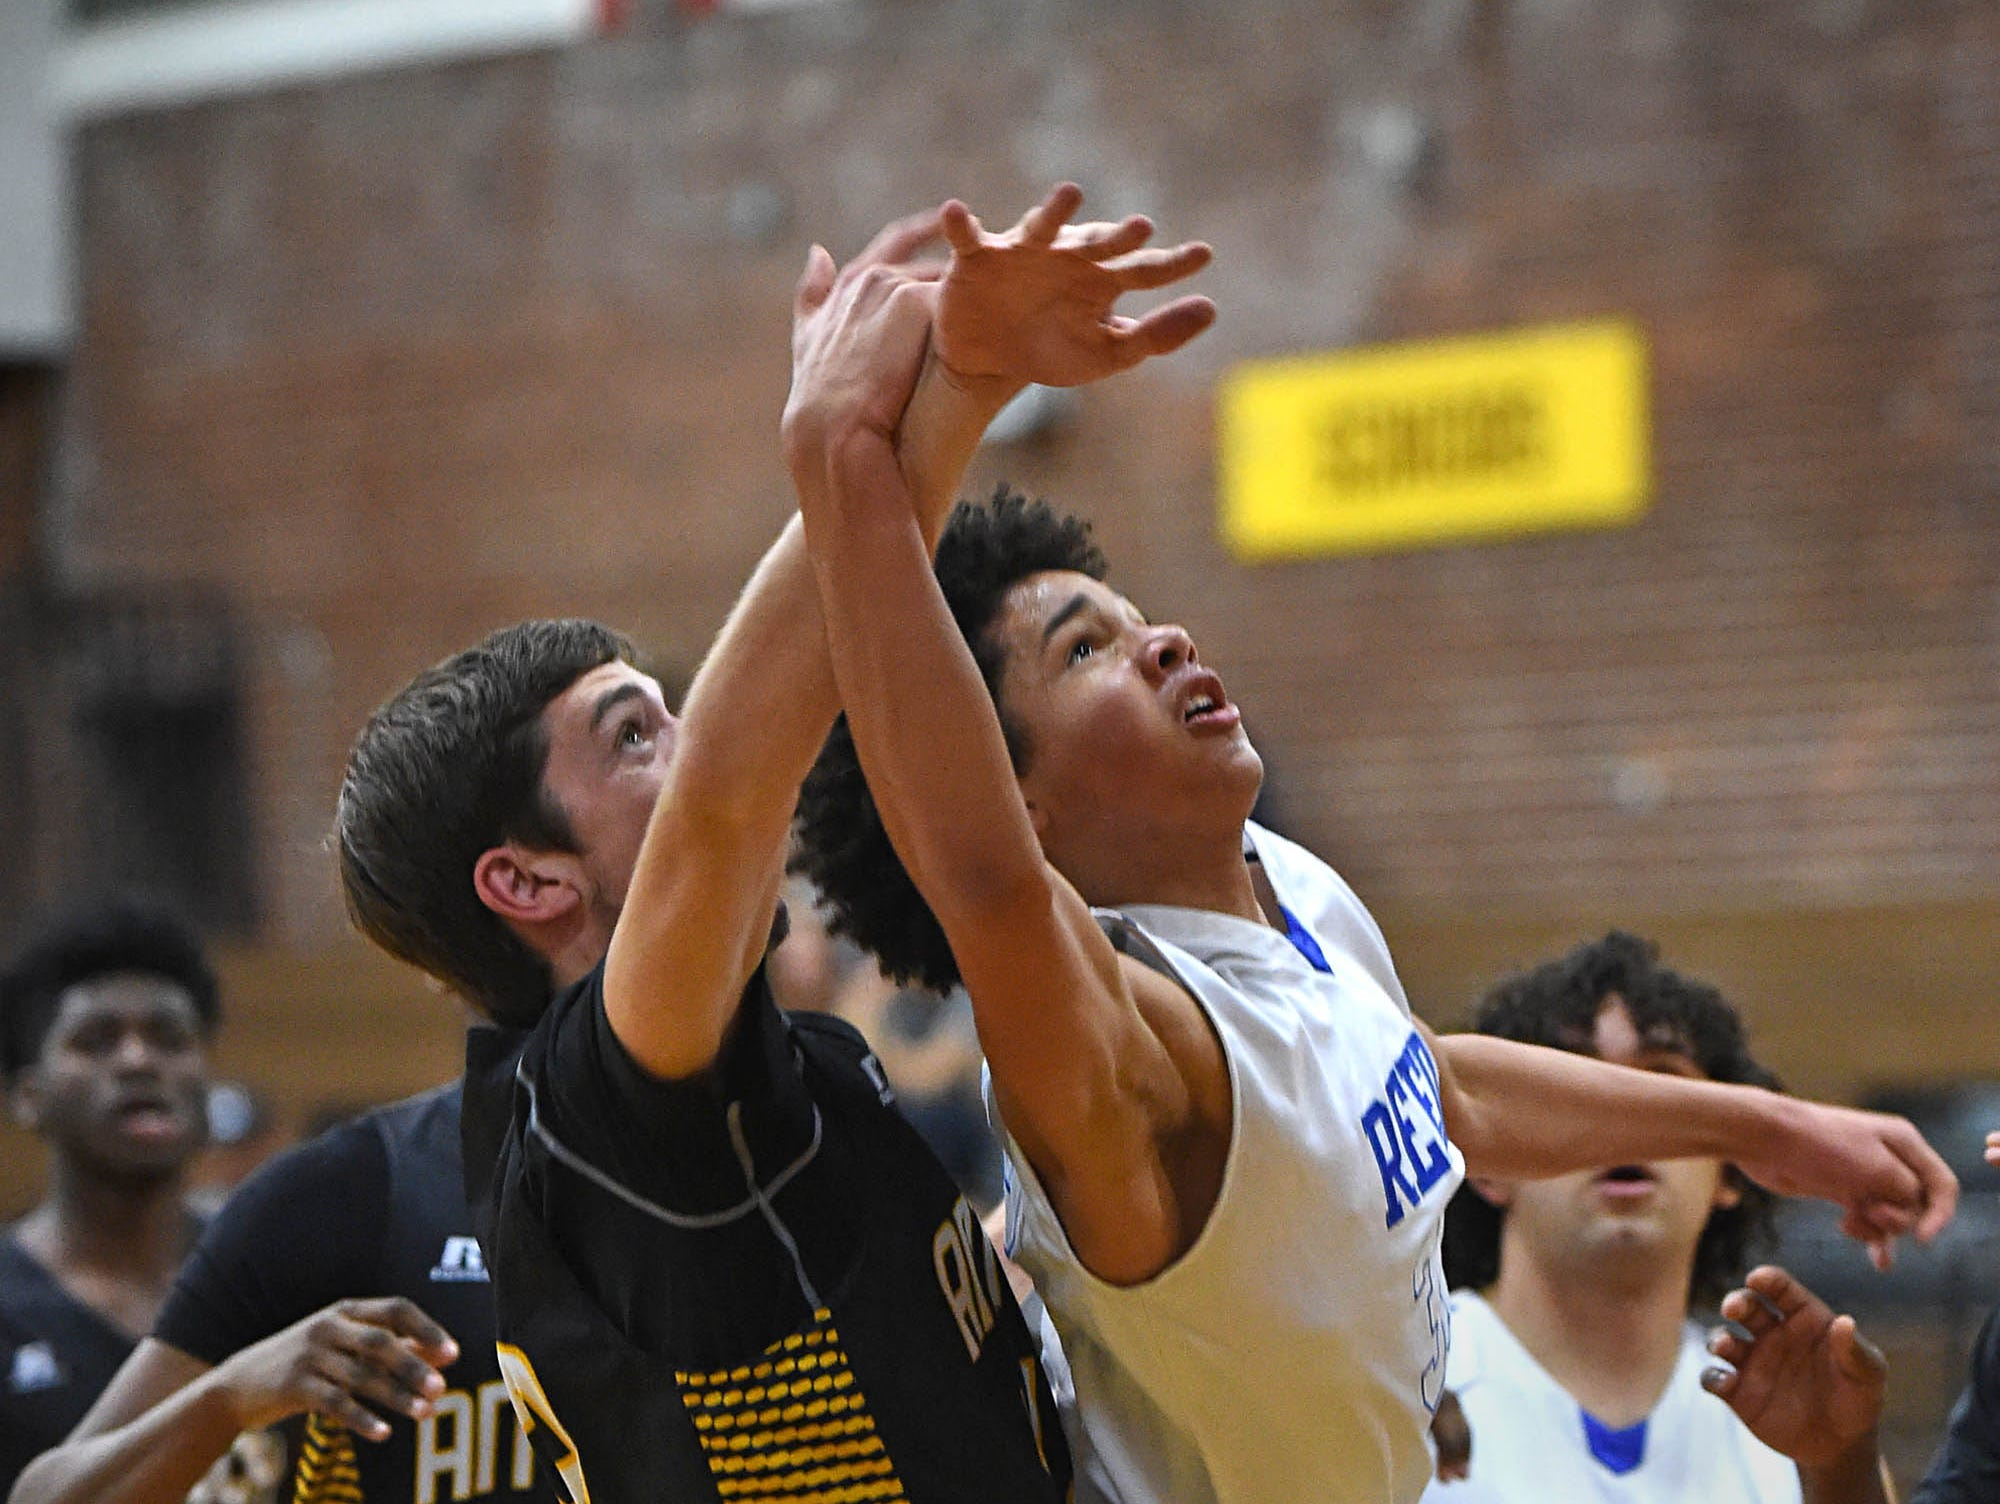 Antioch's Tyler Krieg attempts to block a shot by Reed's Matthew Williams during the Rail City Classic Basketball Tournament at Sparks High School on Tuesday.